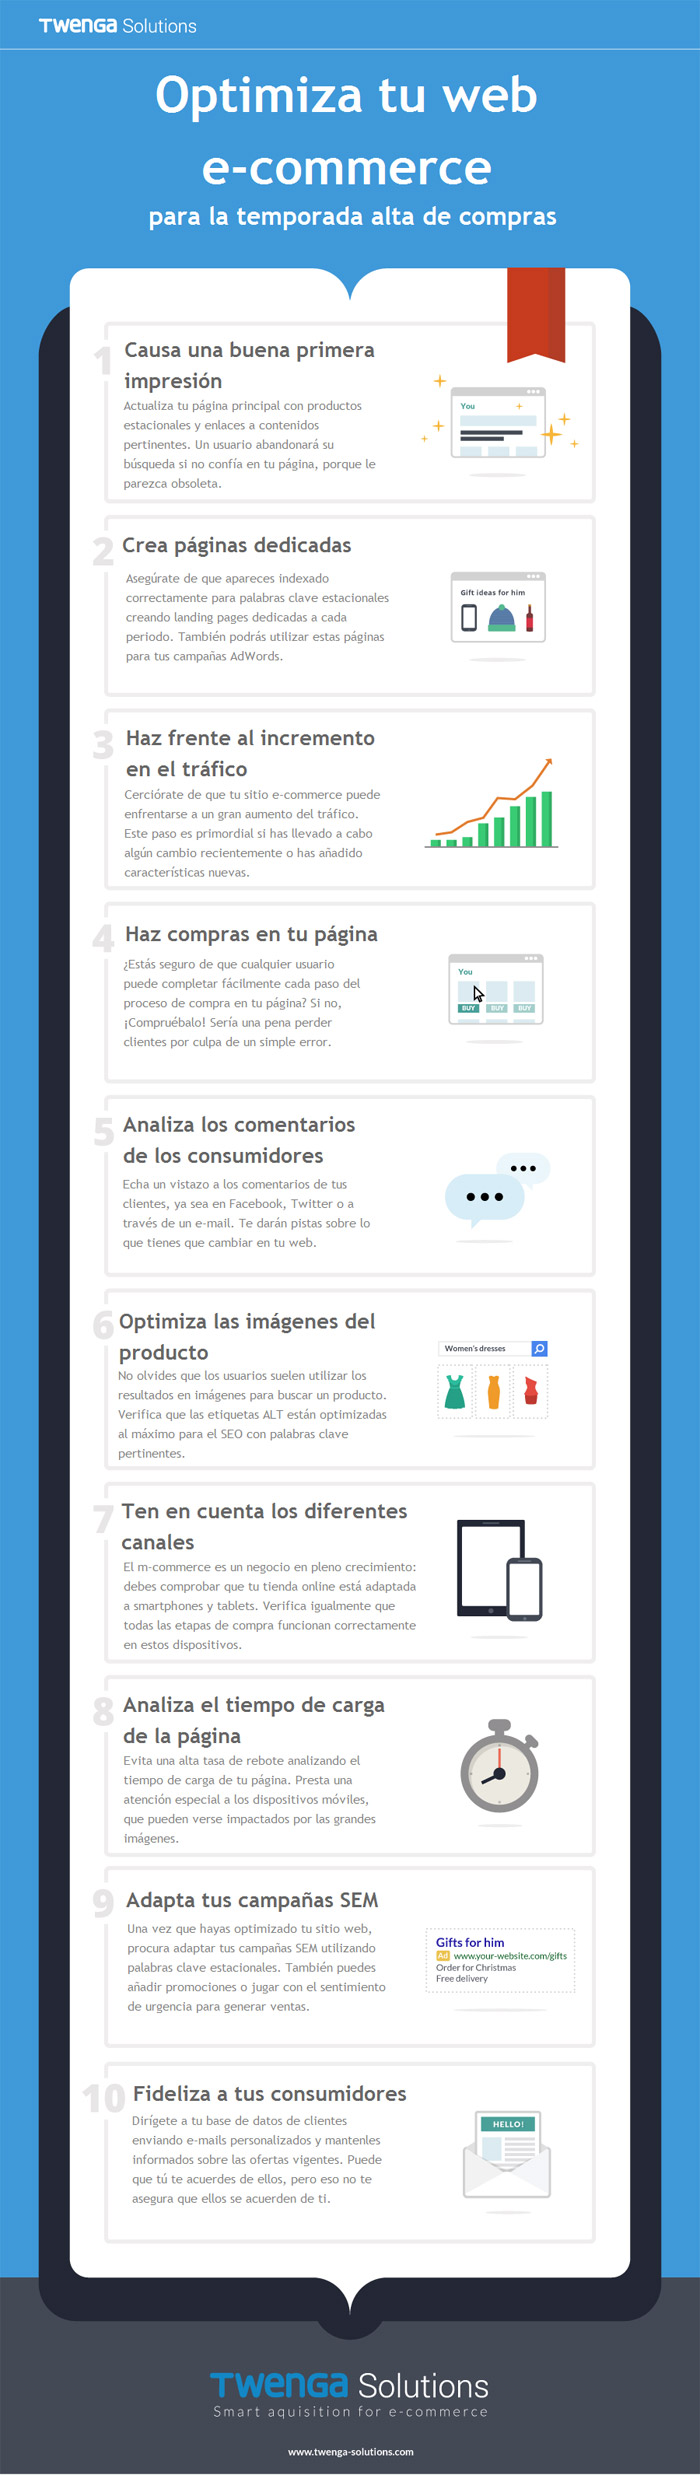 optimiza-web-ecommerce-infographic_md